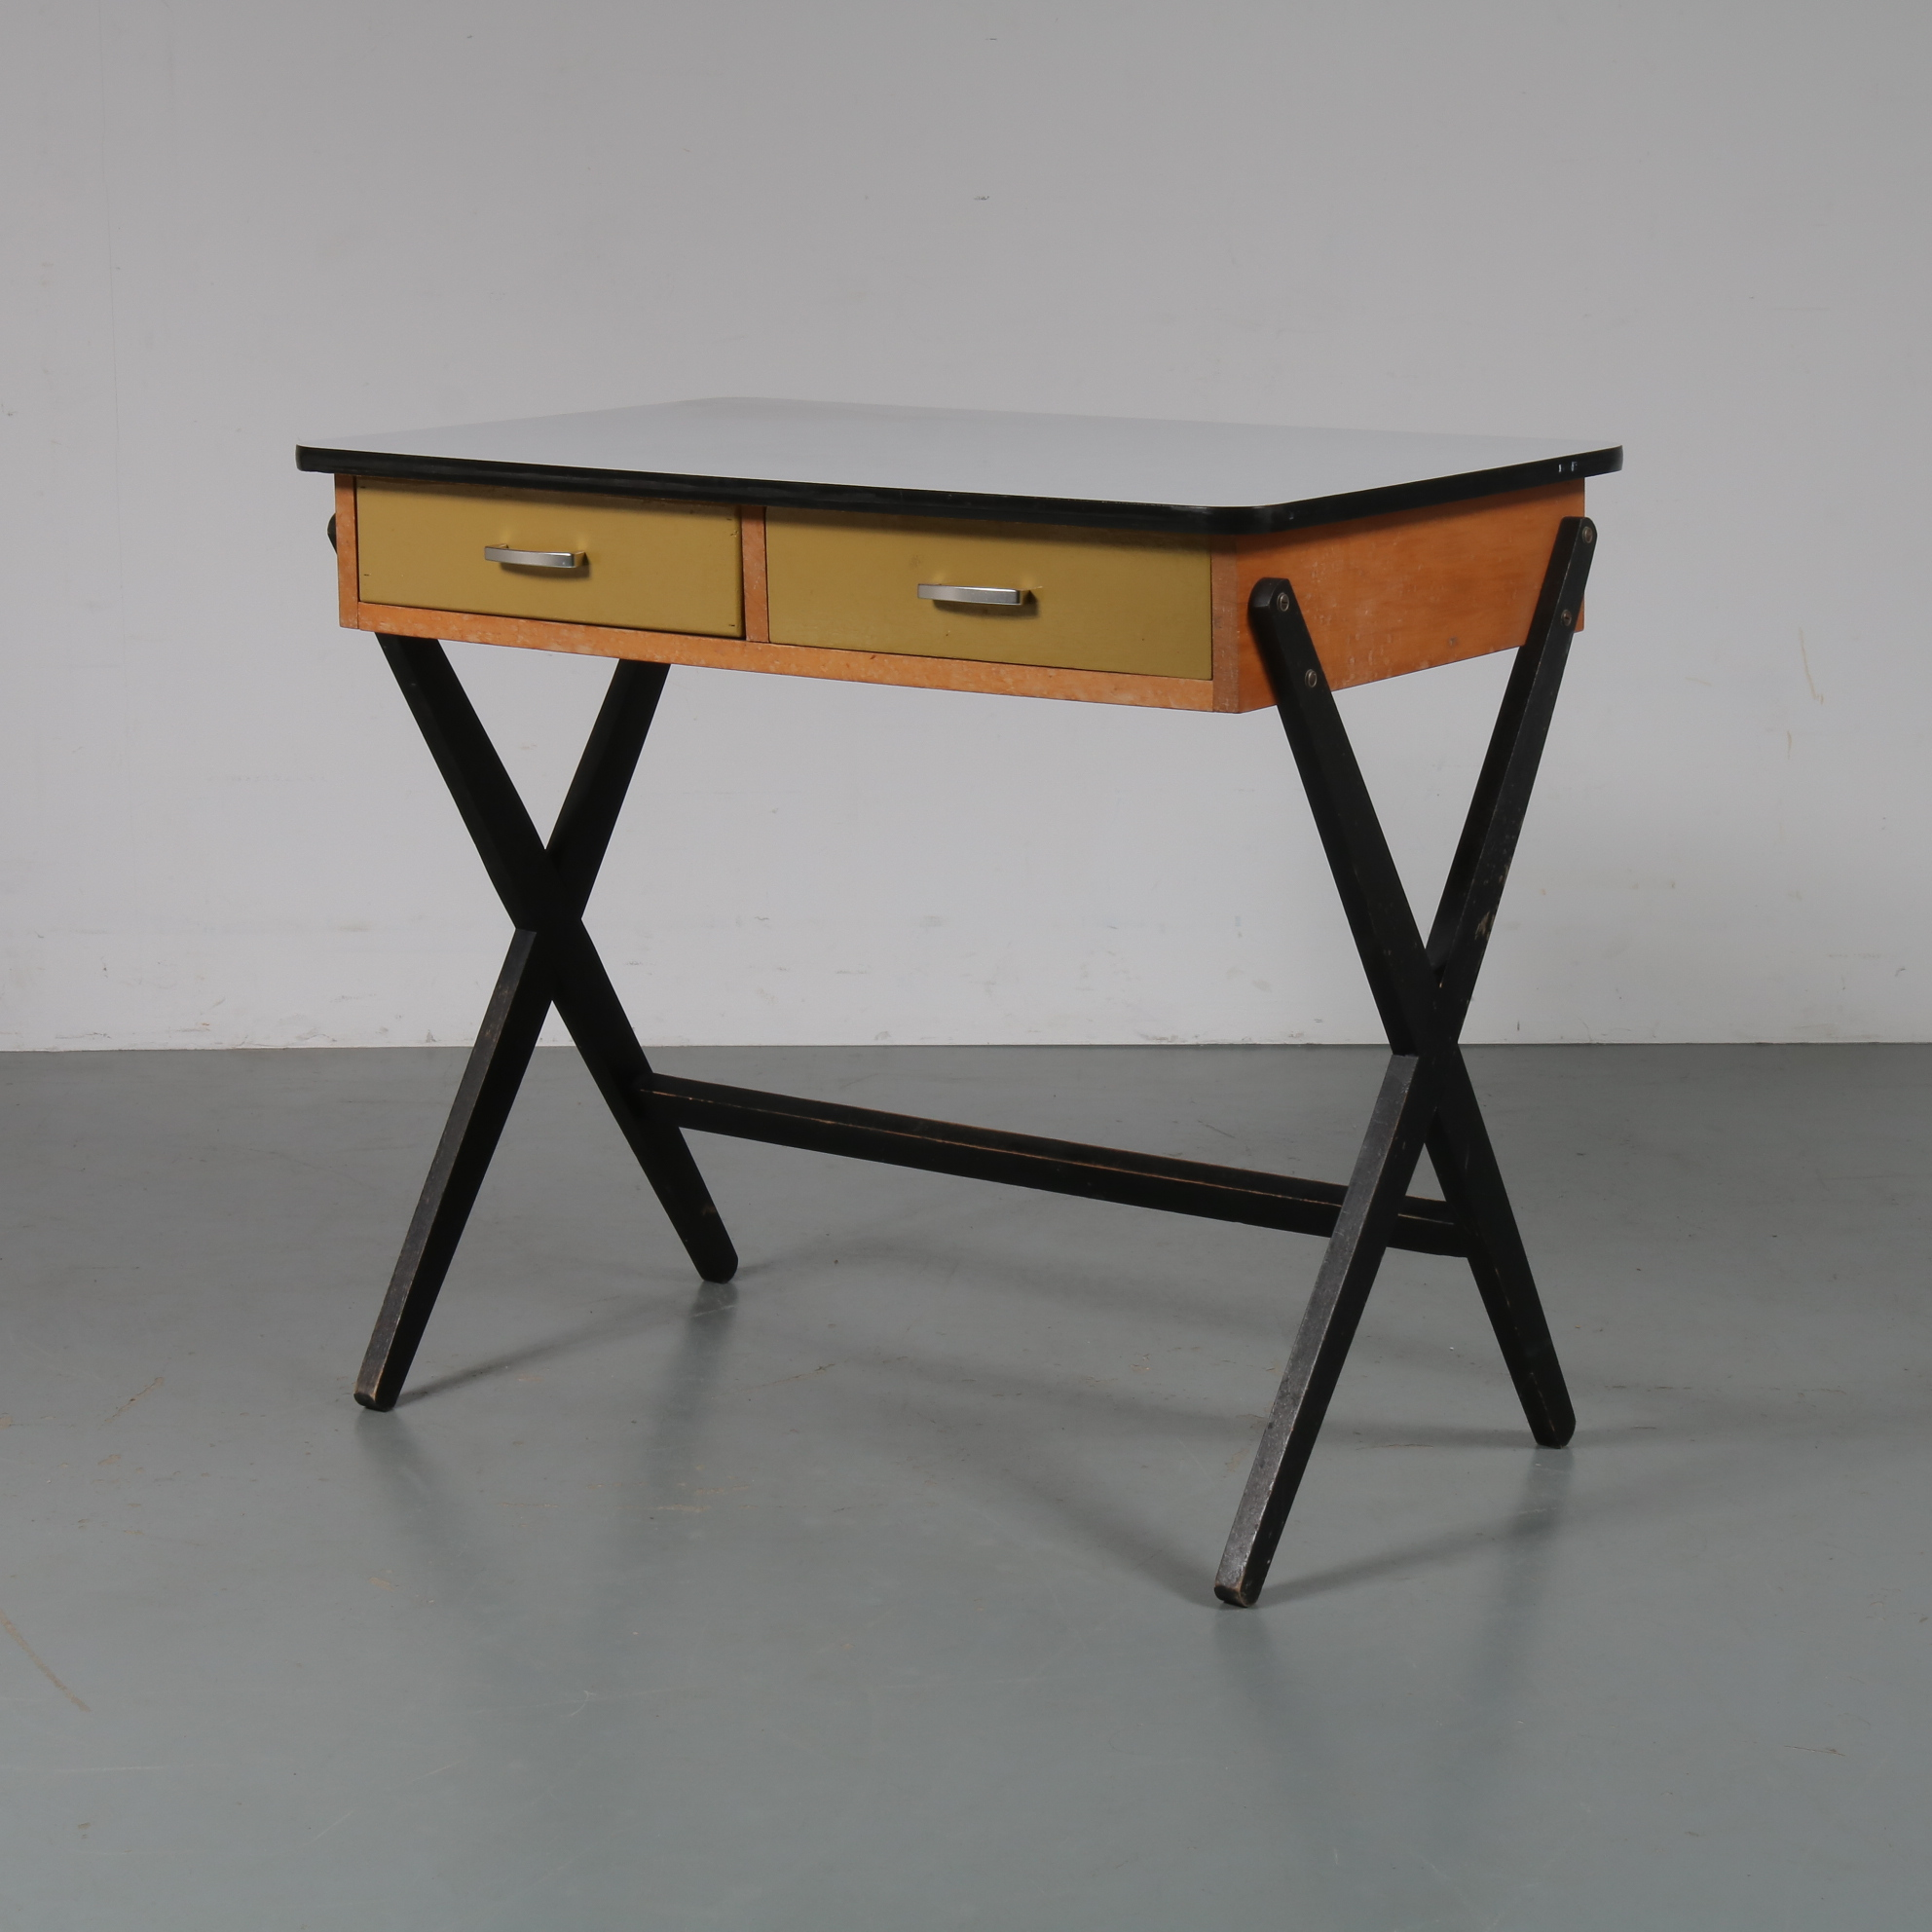 m23079 1950s Small wooden desk with black X-legs, yellow drawers and laminated wooden top Coen de Vries Everest / Netherlands